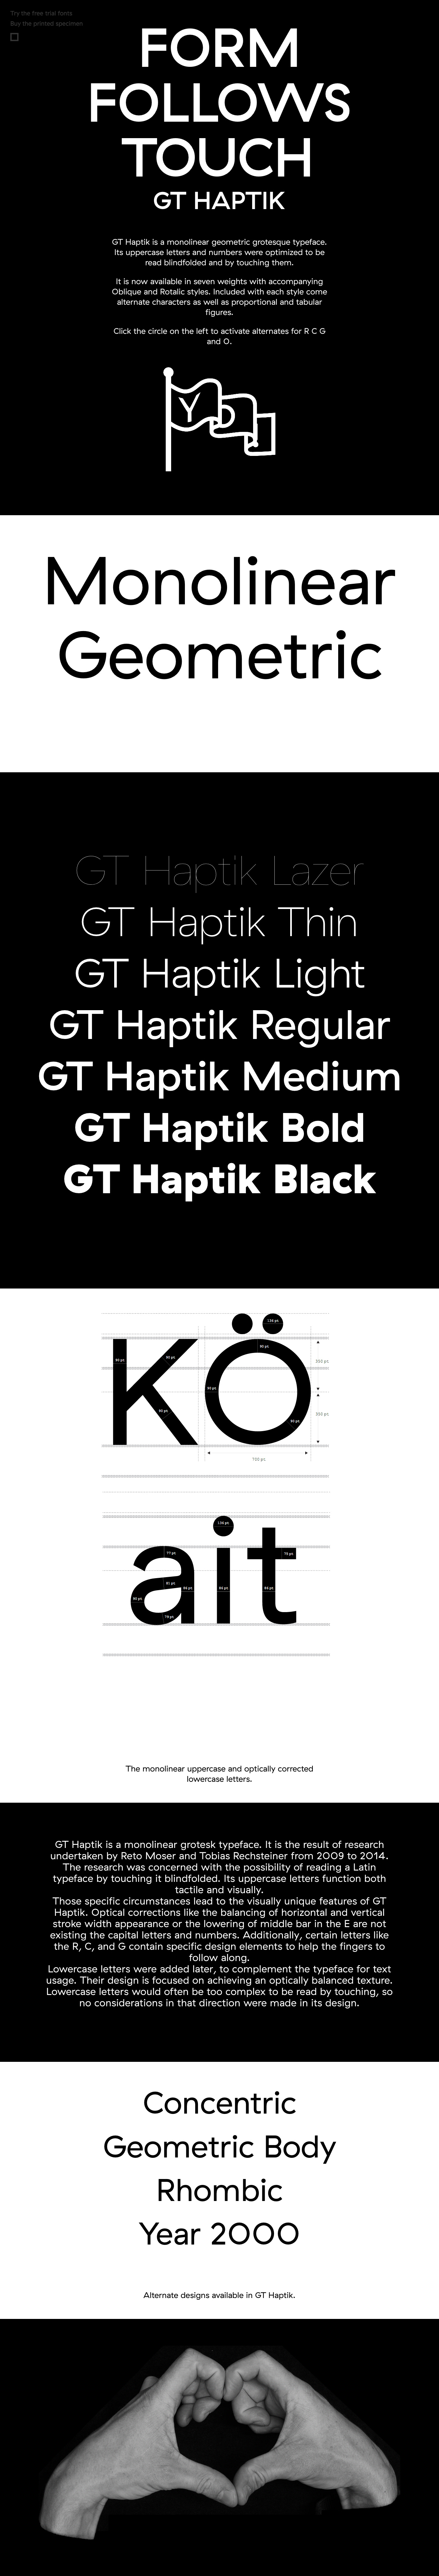 GT Haptik Font Website Screenshot